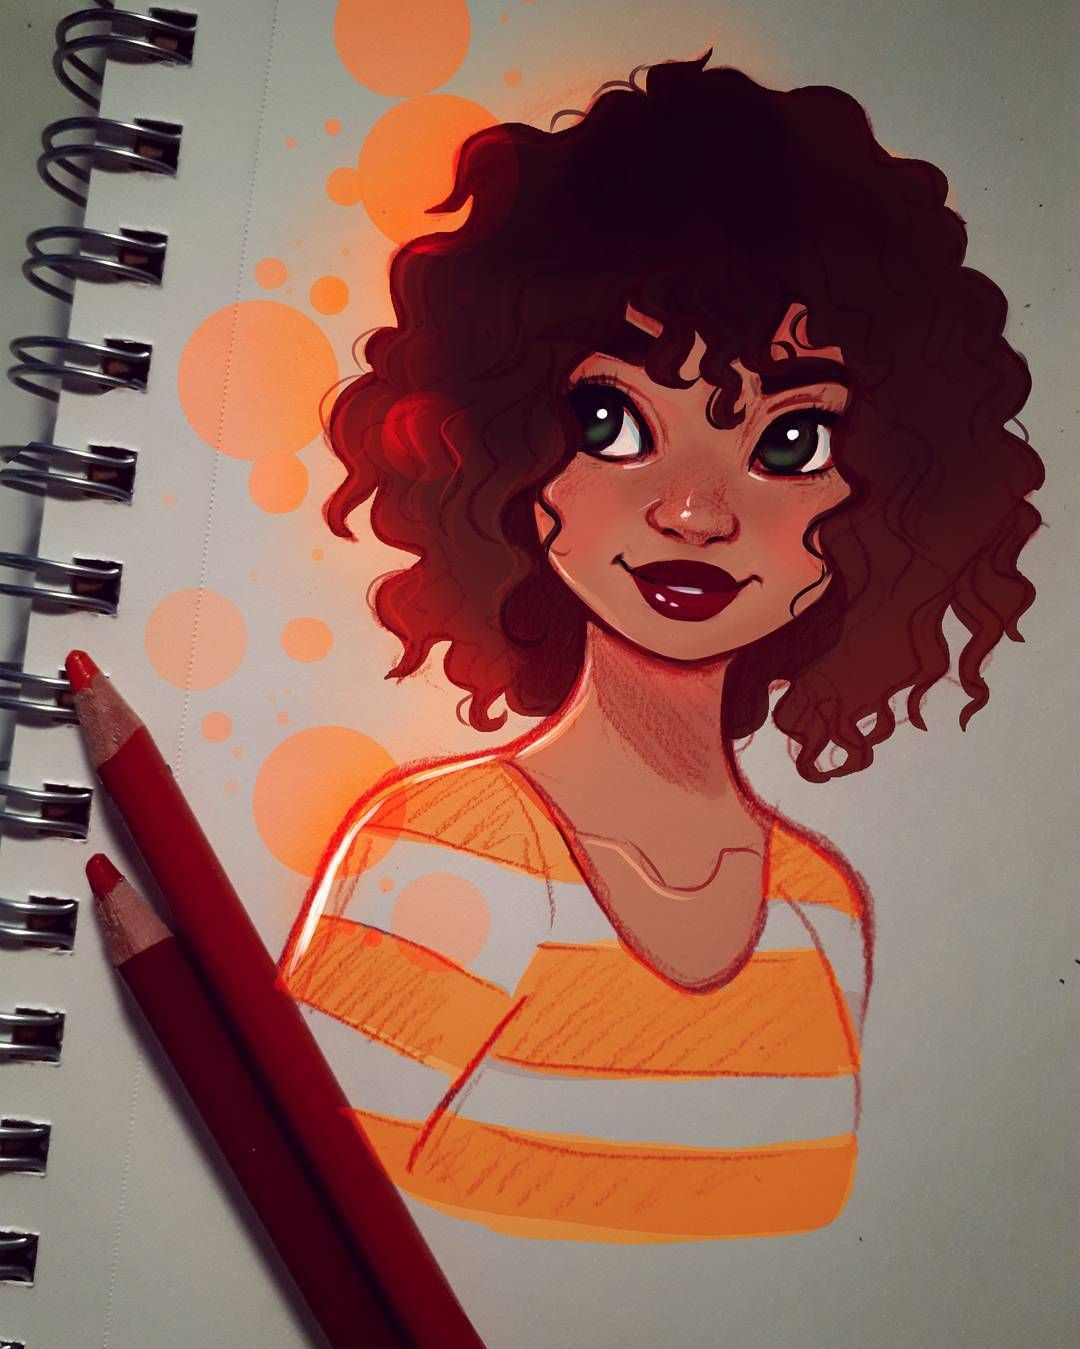 Art By Elliee Drawing Art Sketching Doodle Cute Oc Illustration Characterdesign Portrait S Illustration Art Drawing Pencil Drawings Digital Art Girl